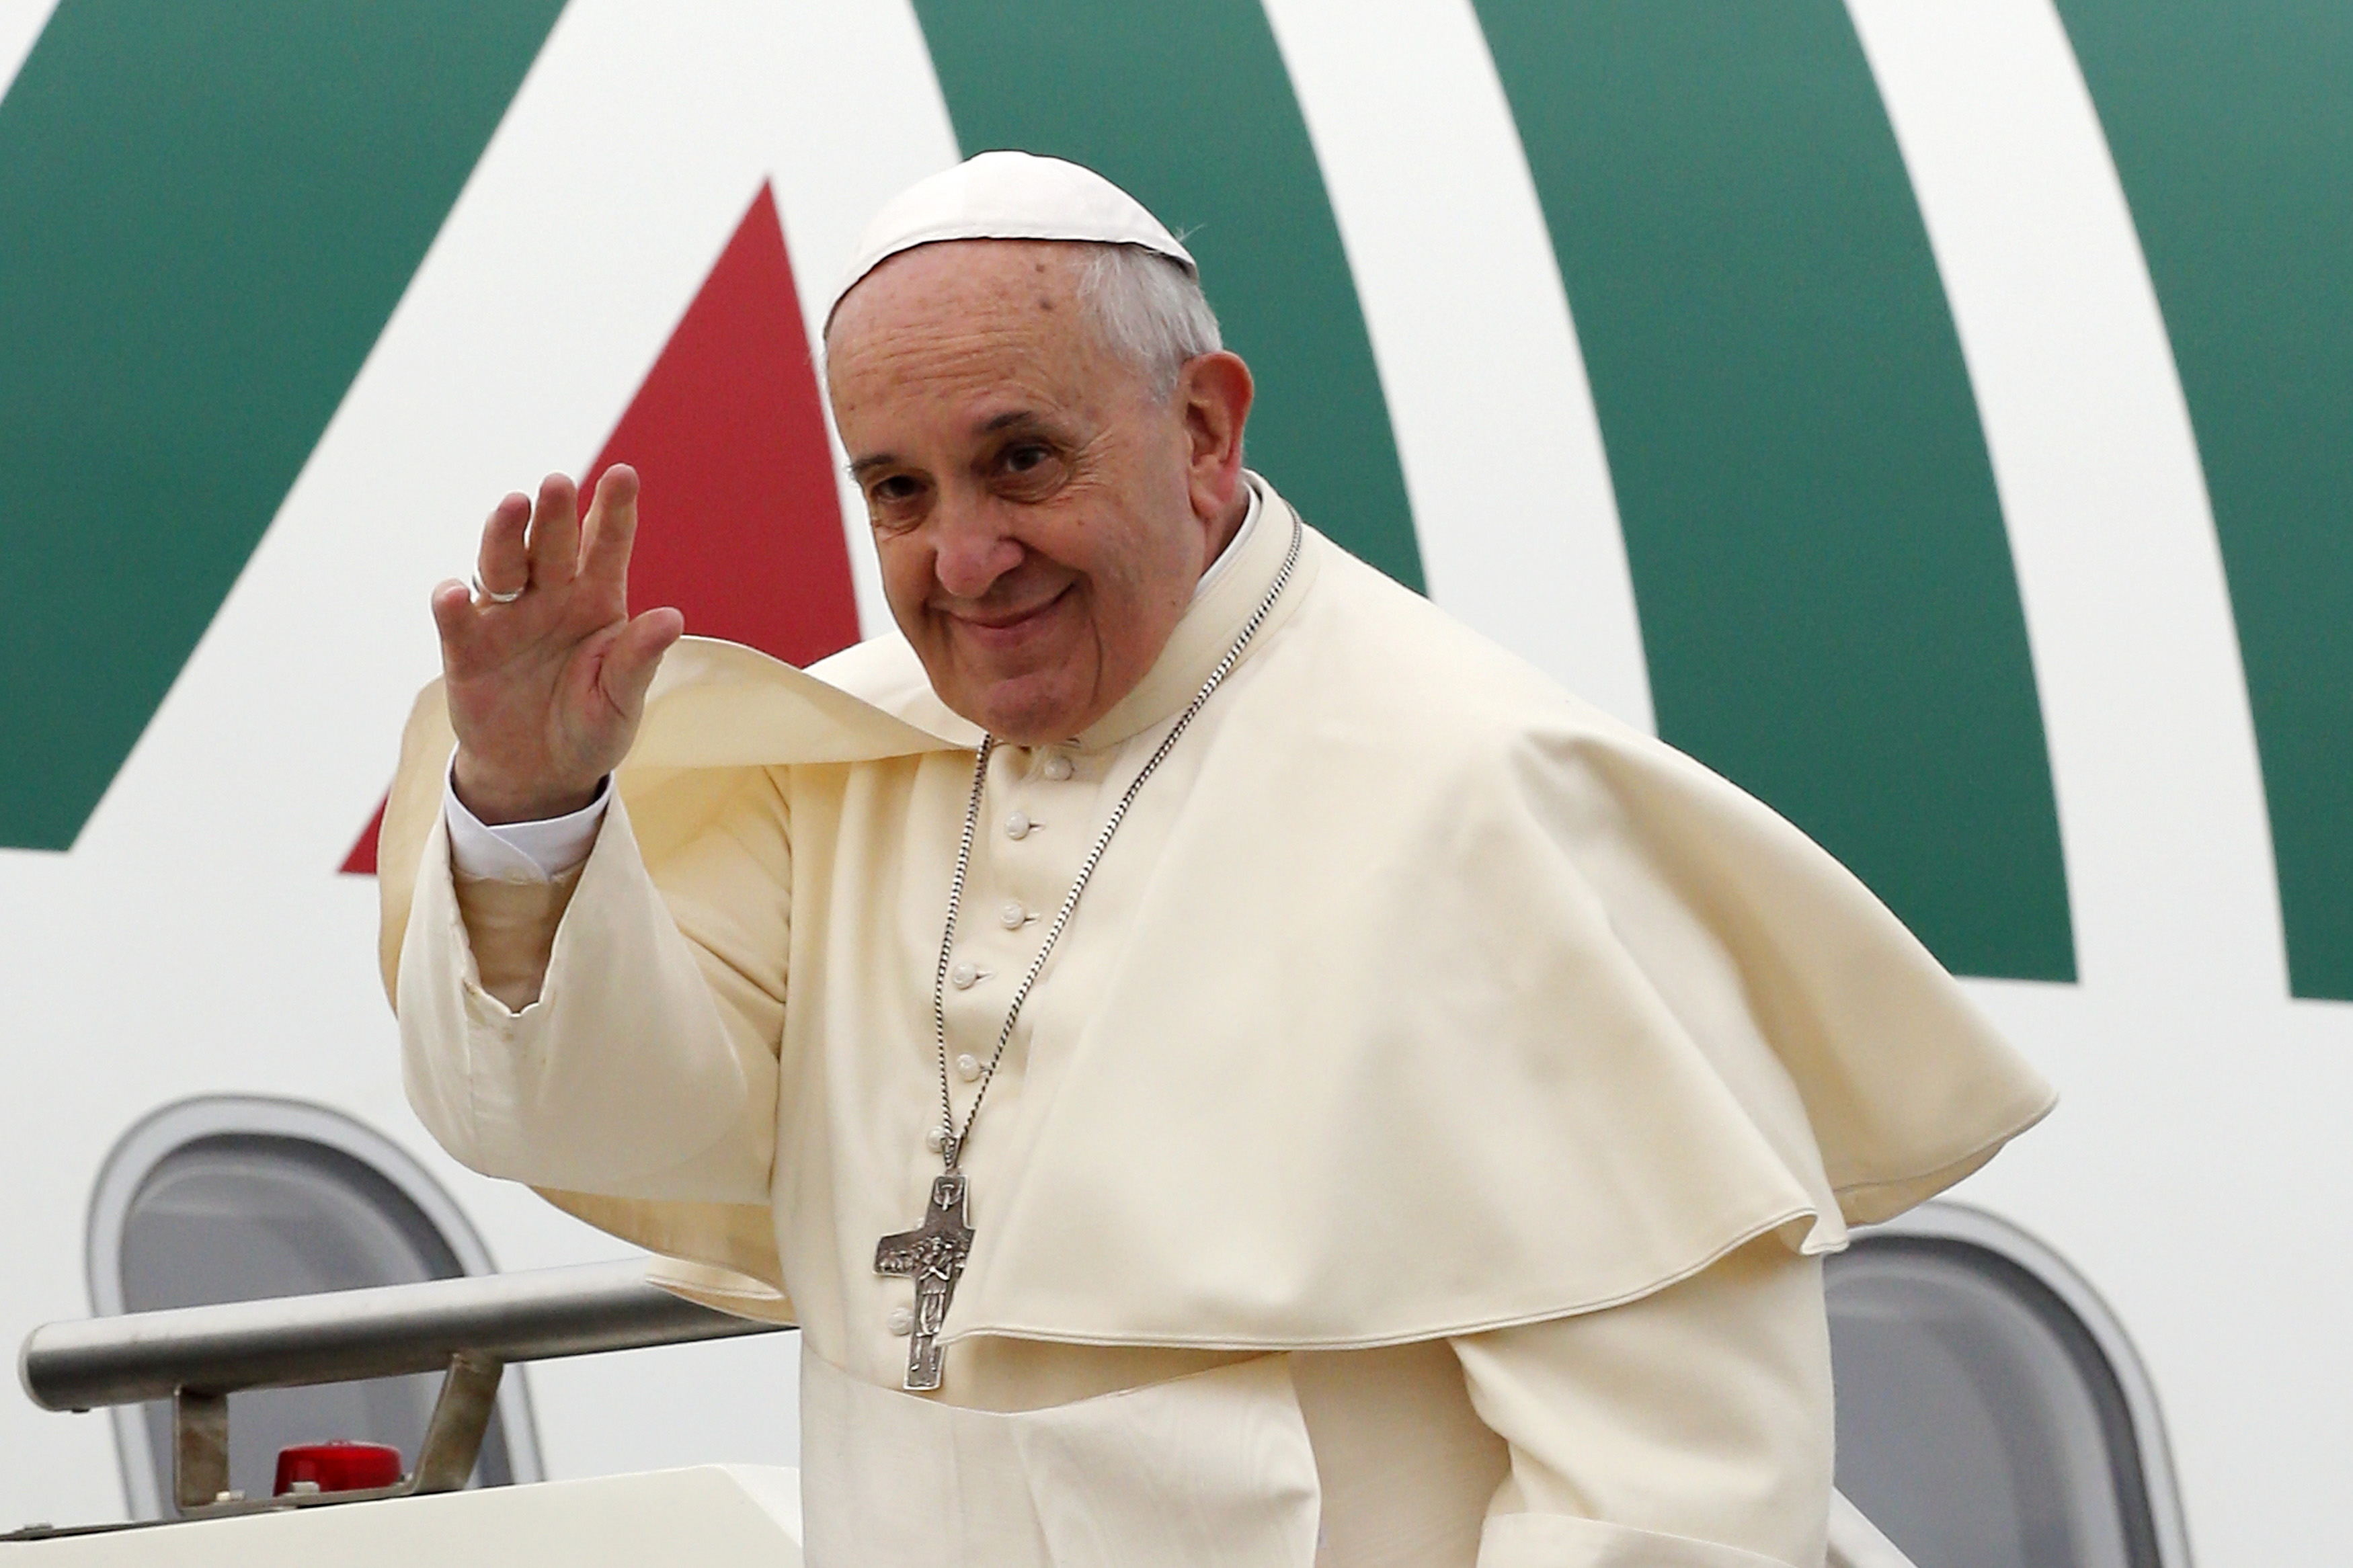 Pope Francis waves as he boards a plane at Fiumicino Airport in Rome Nov. 28, 2014